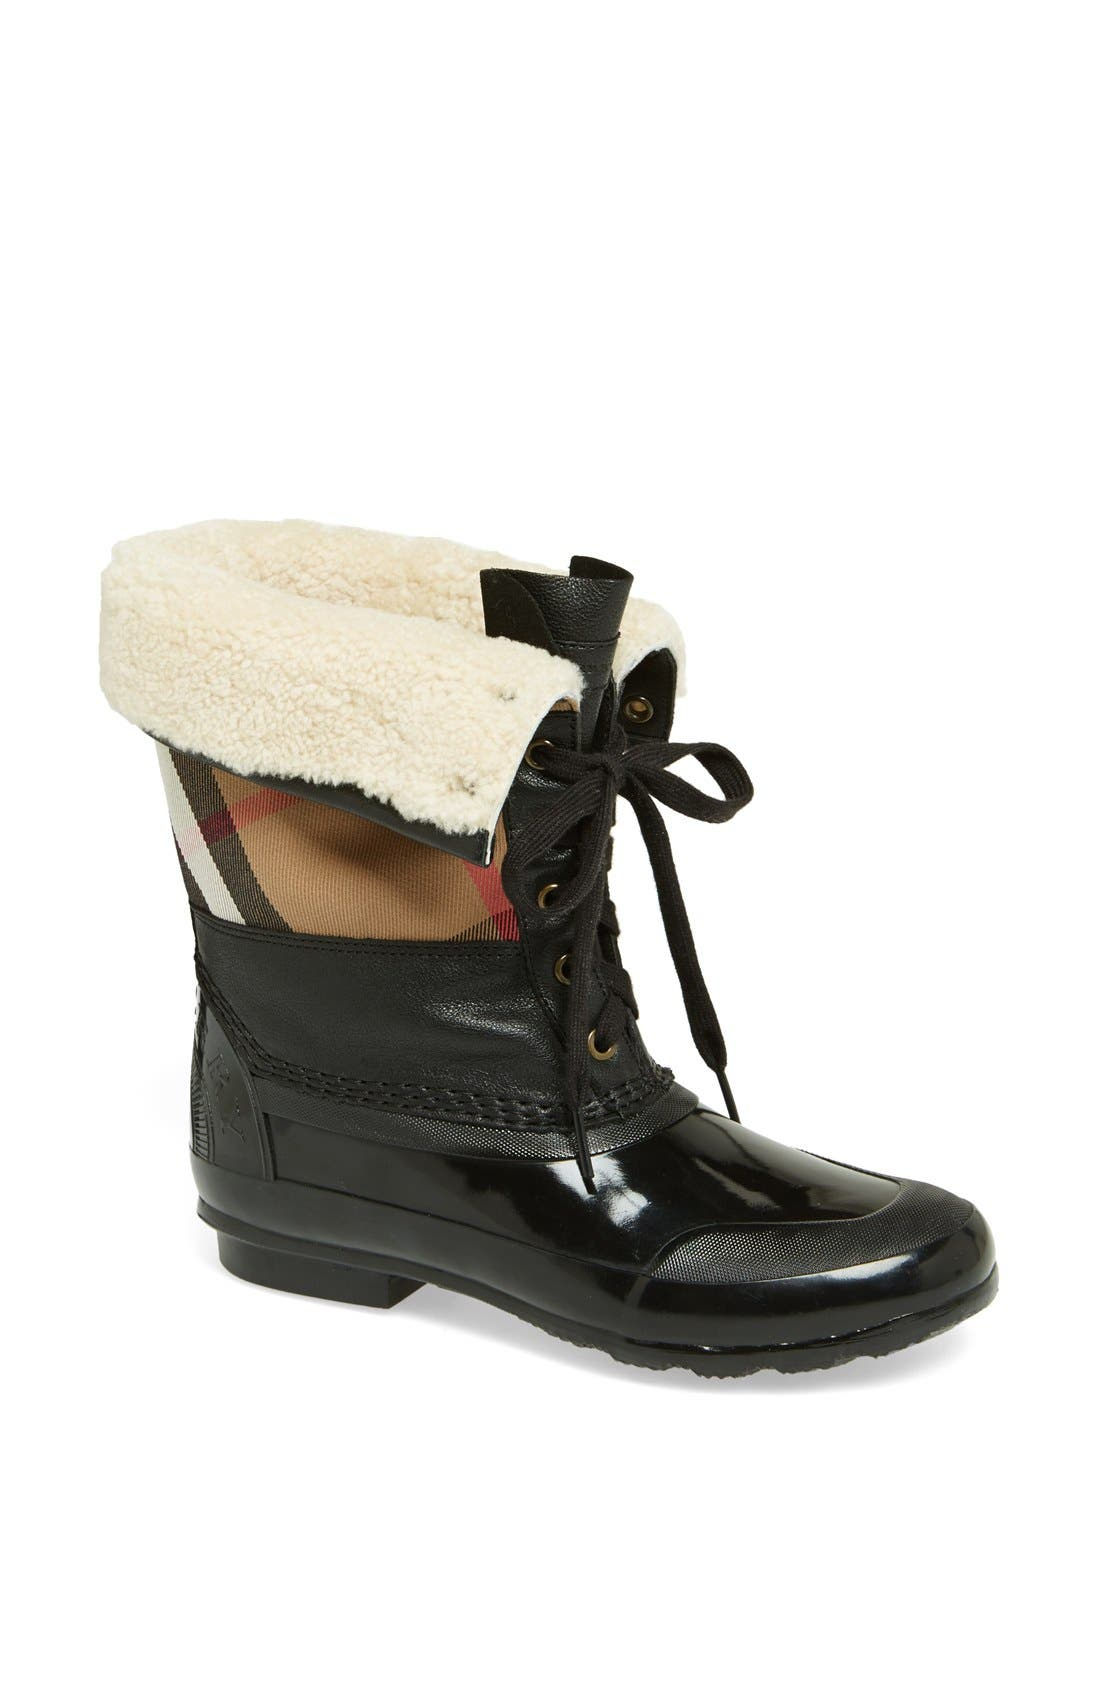 Main Image - Burberry 'Danning' Waterproof Bootie